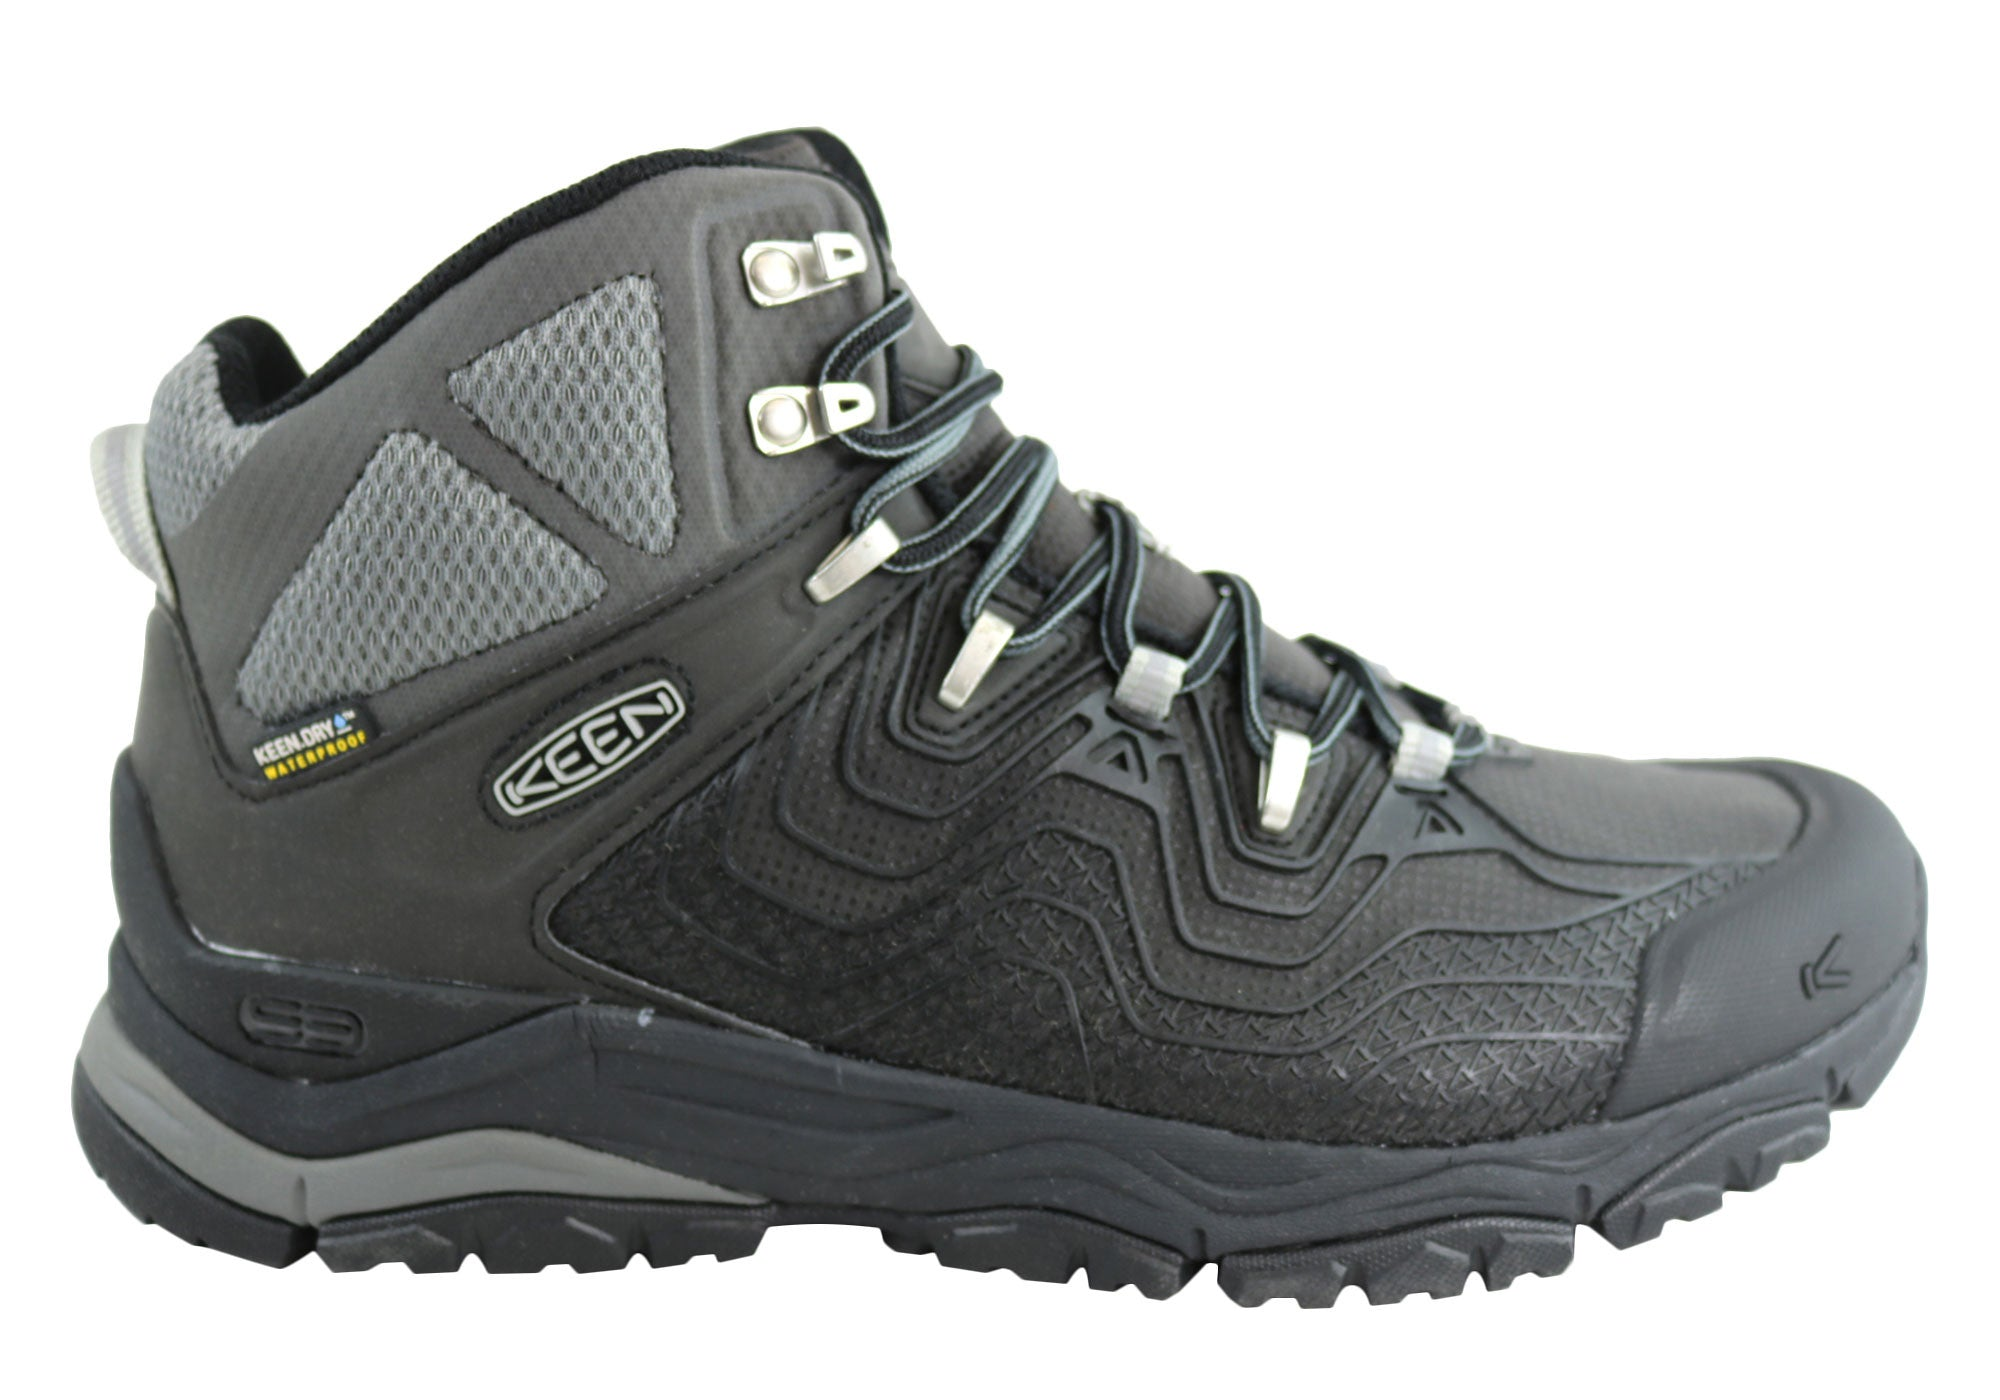 0acaaccf7ad Keen Aphlex Mid Waterpoof Mens Wide Fit Hiking Boots